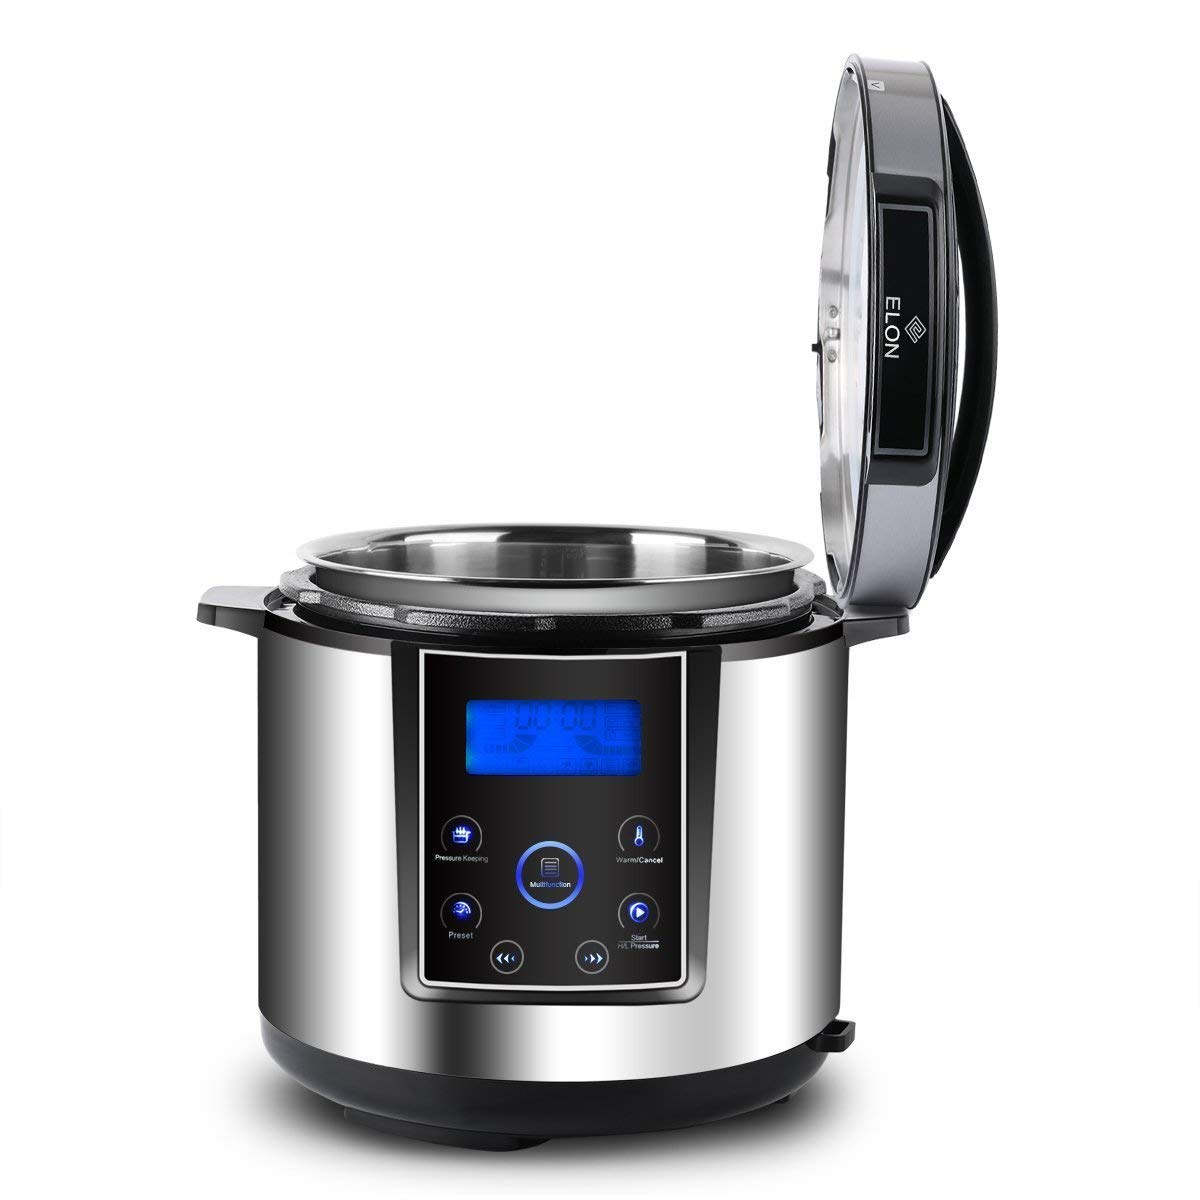 ELON Elite Modern Multi-Cooker 6 Qt 11-in-1 Programmable Pressure Cooker, Slow Cooker, Rice Cooker, FAST Steamer, Sauté, Yogurt Maker and Warmer. FAST Cooker with TRIPLE Sealed Lid (6 QT)